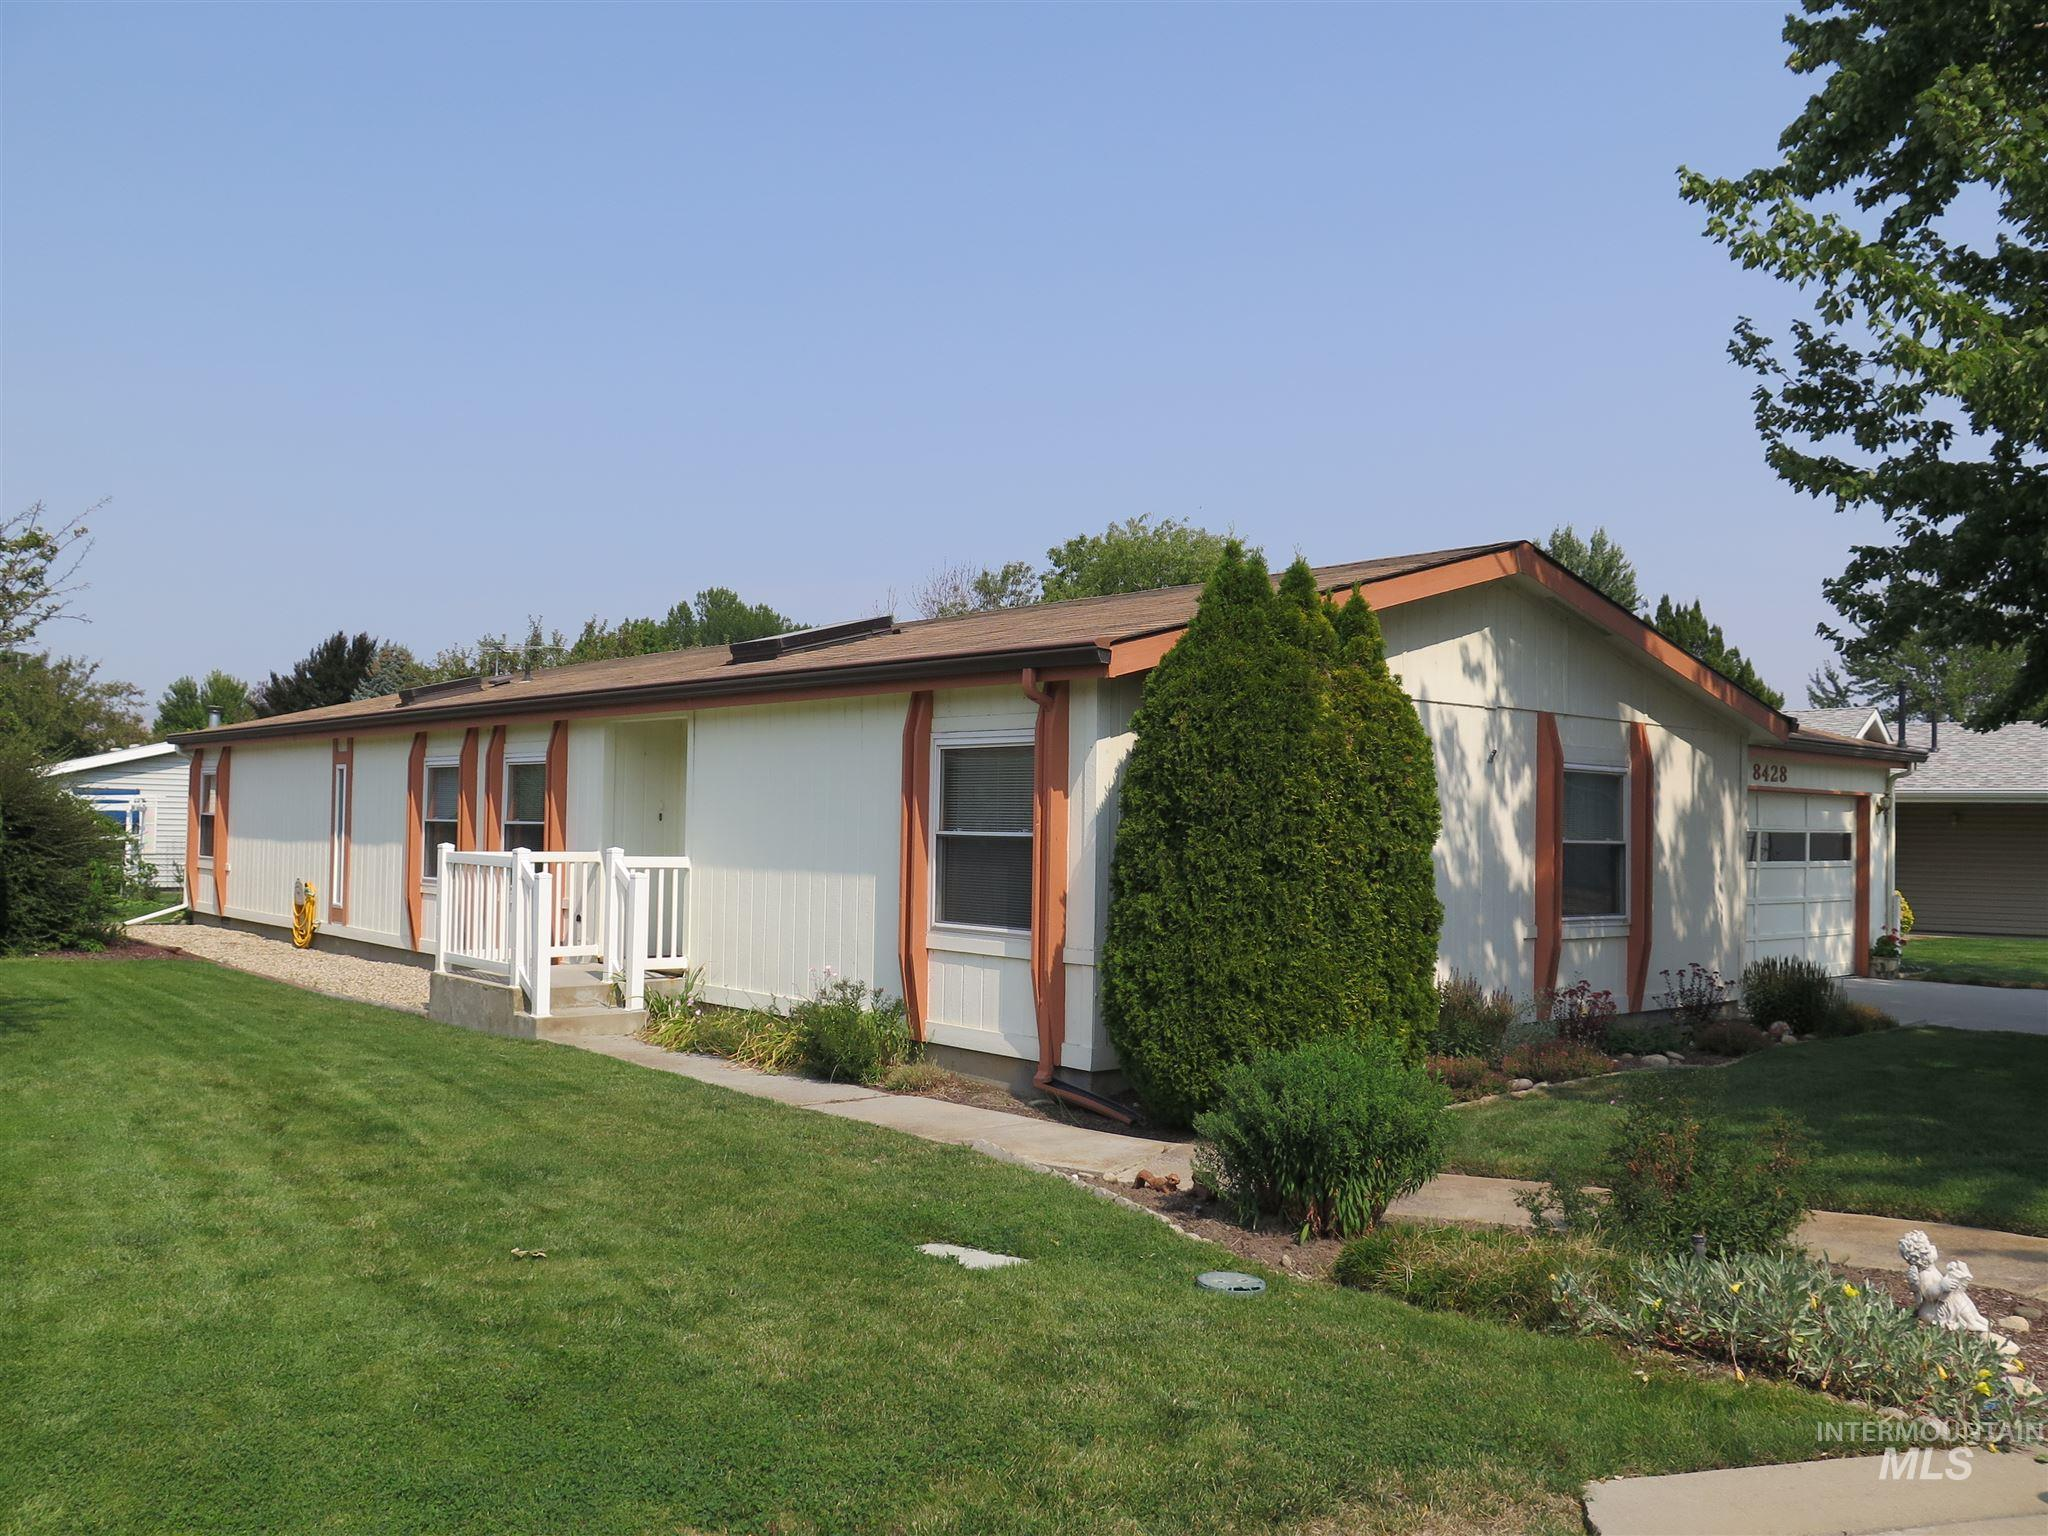 Photo for 8428 W Willowdale Dr, Garden City, ID 83714 (MLS # 98779234)